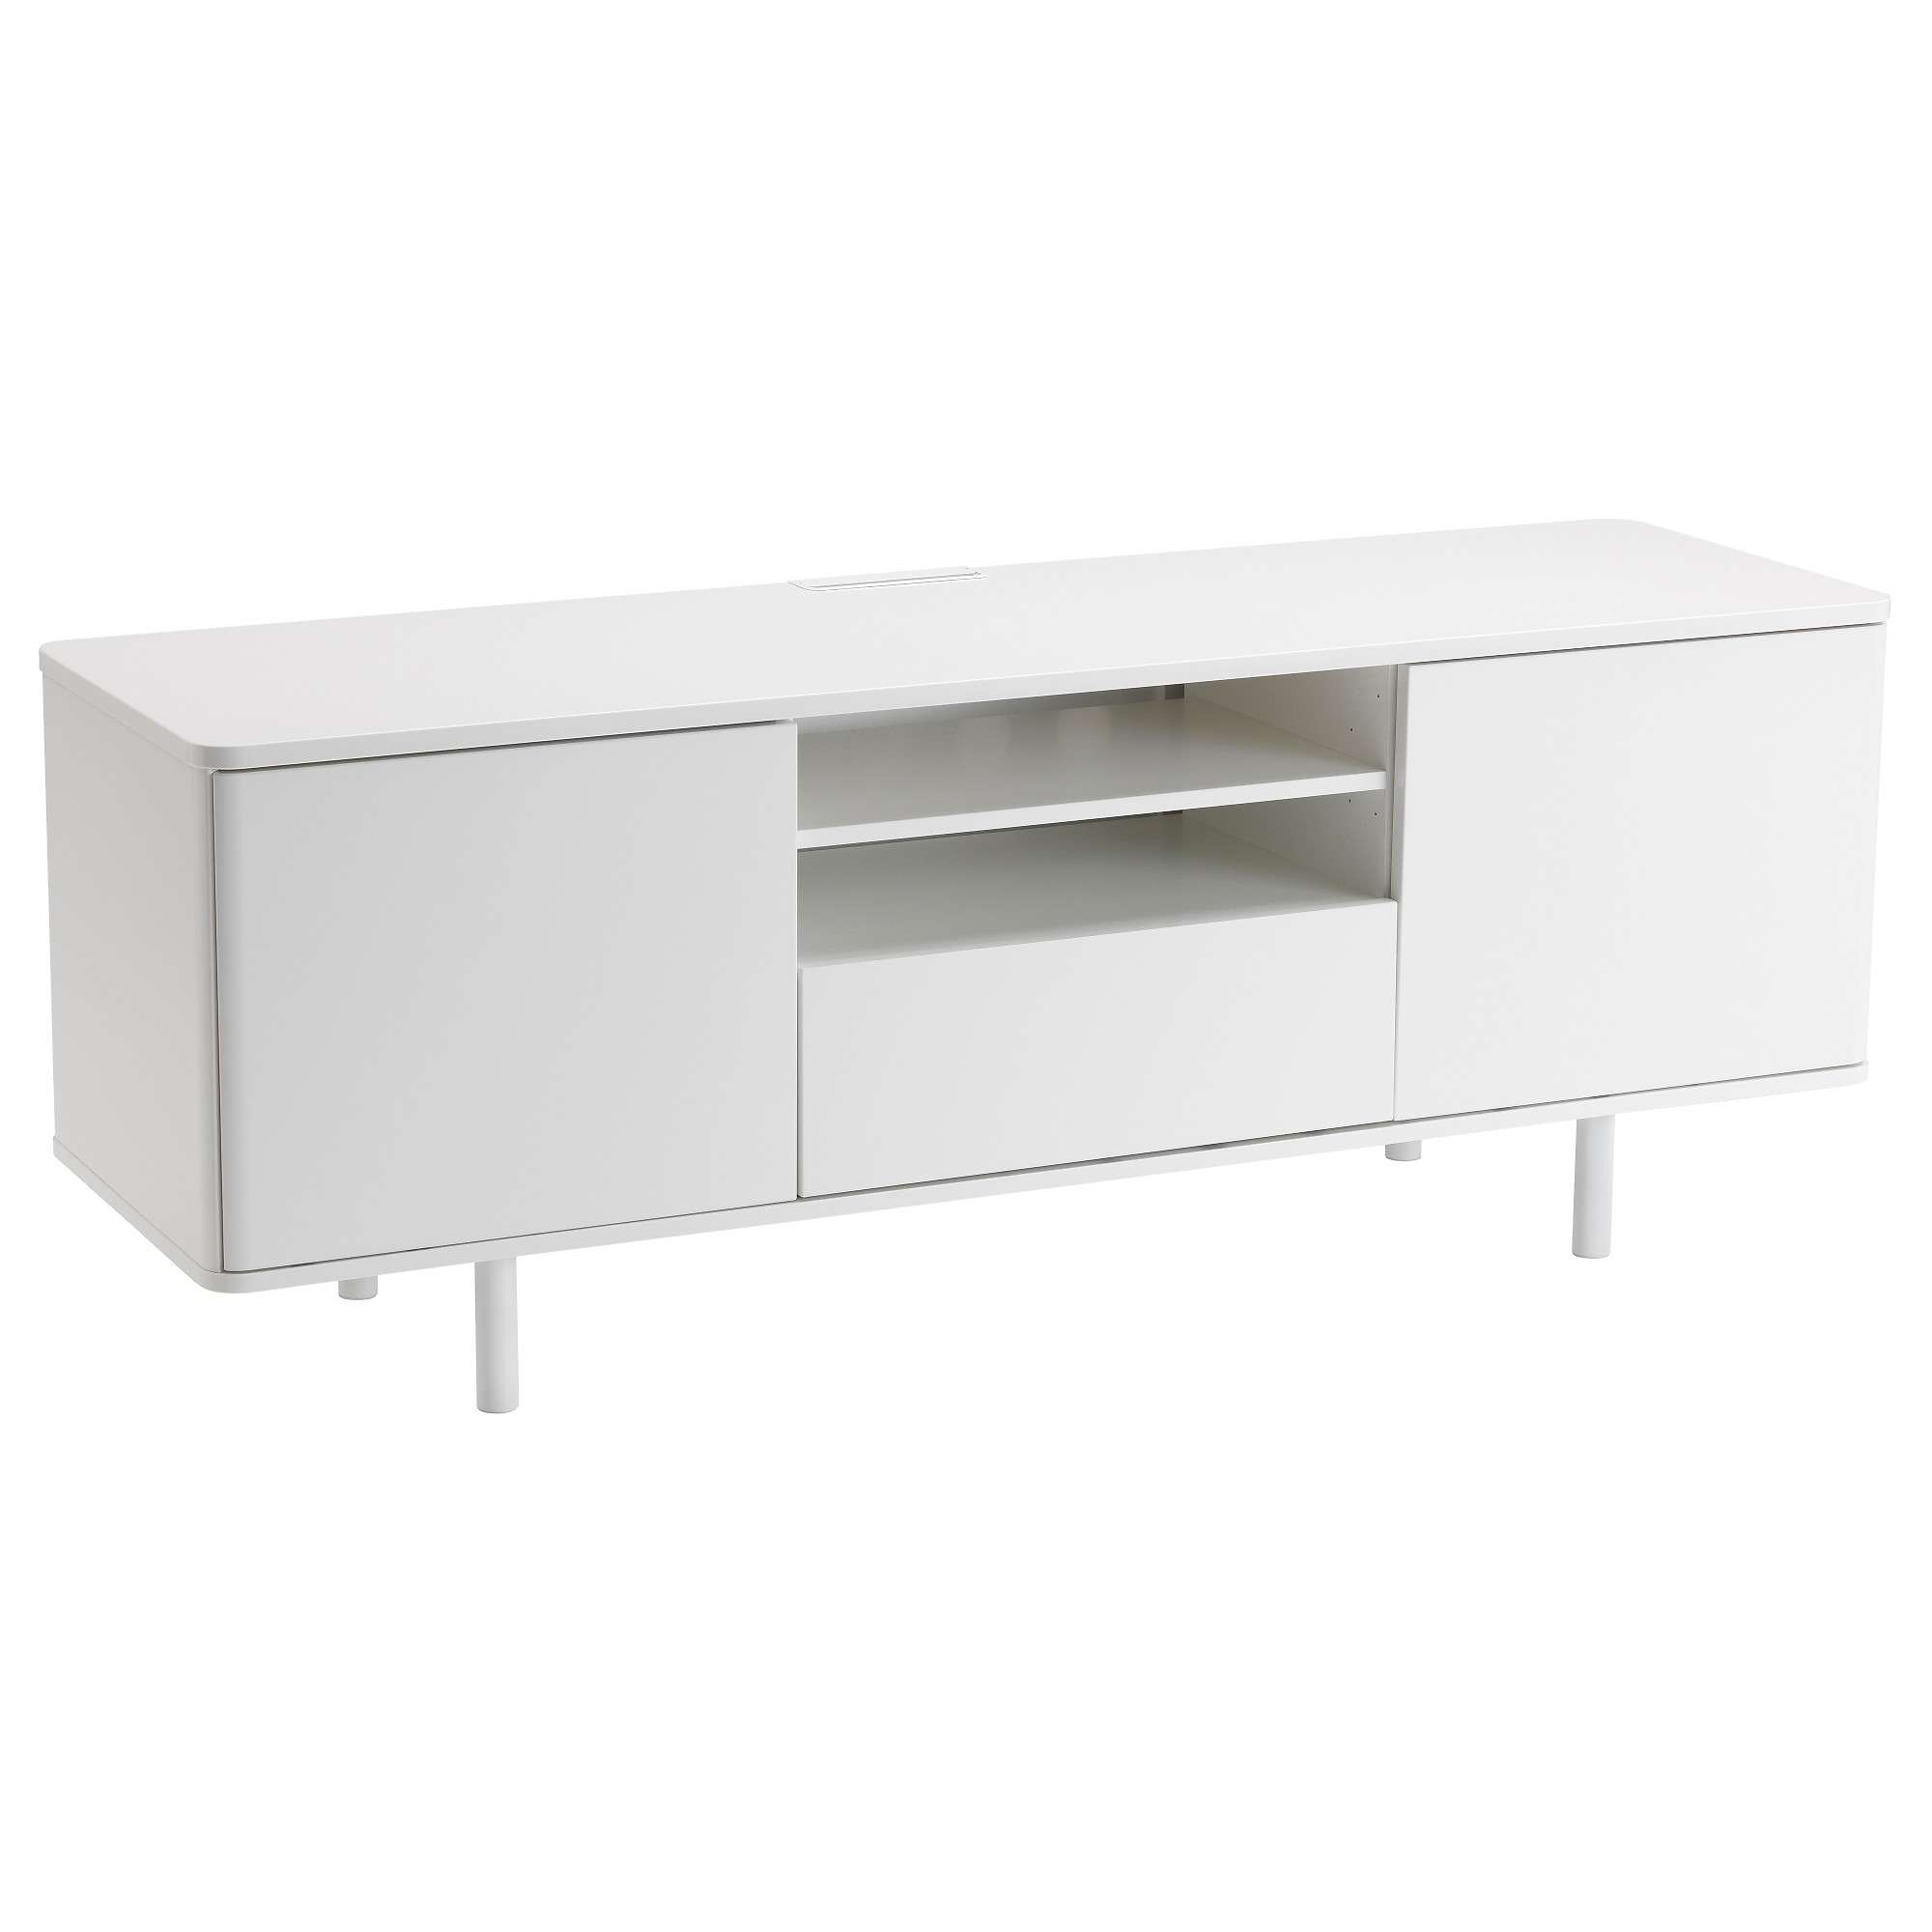 Mostorp Tv Bench White 159x46 Cm – Ikea Regarding White Gloss Ikea Sideboards (View 15 of 20)